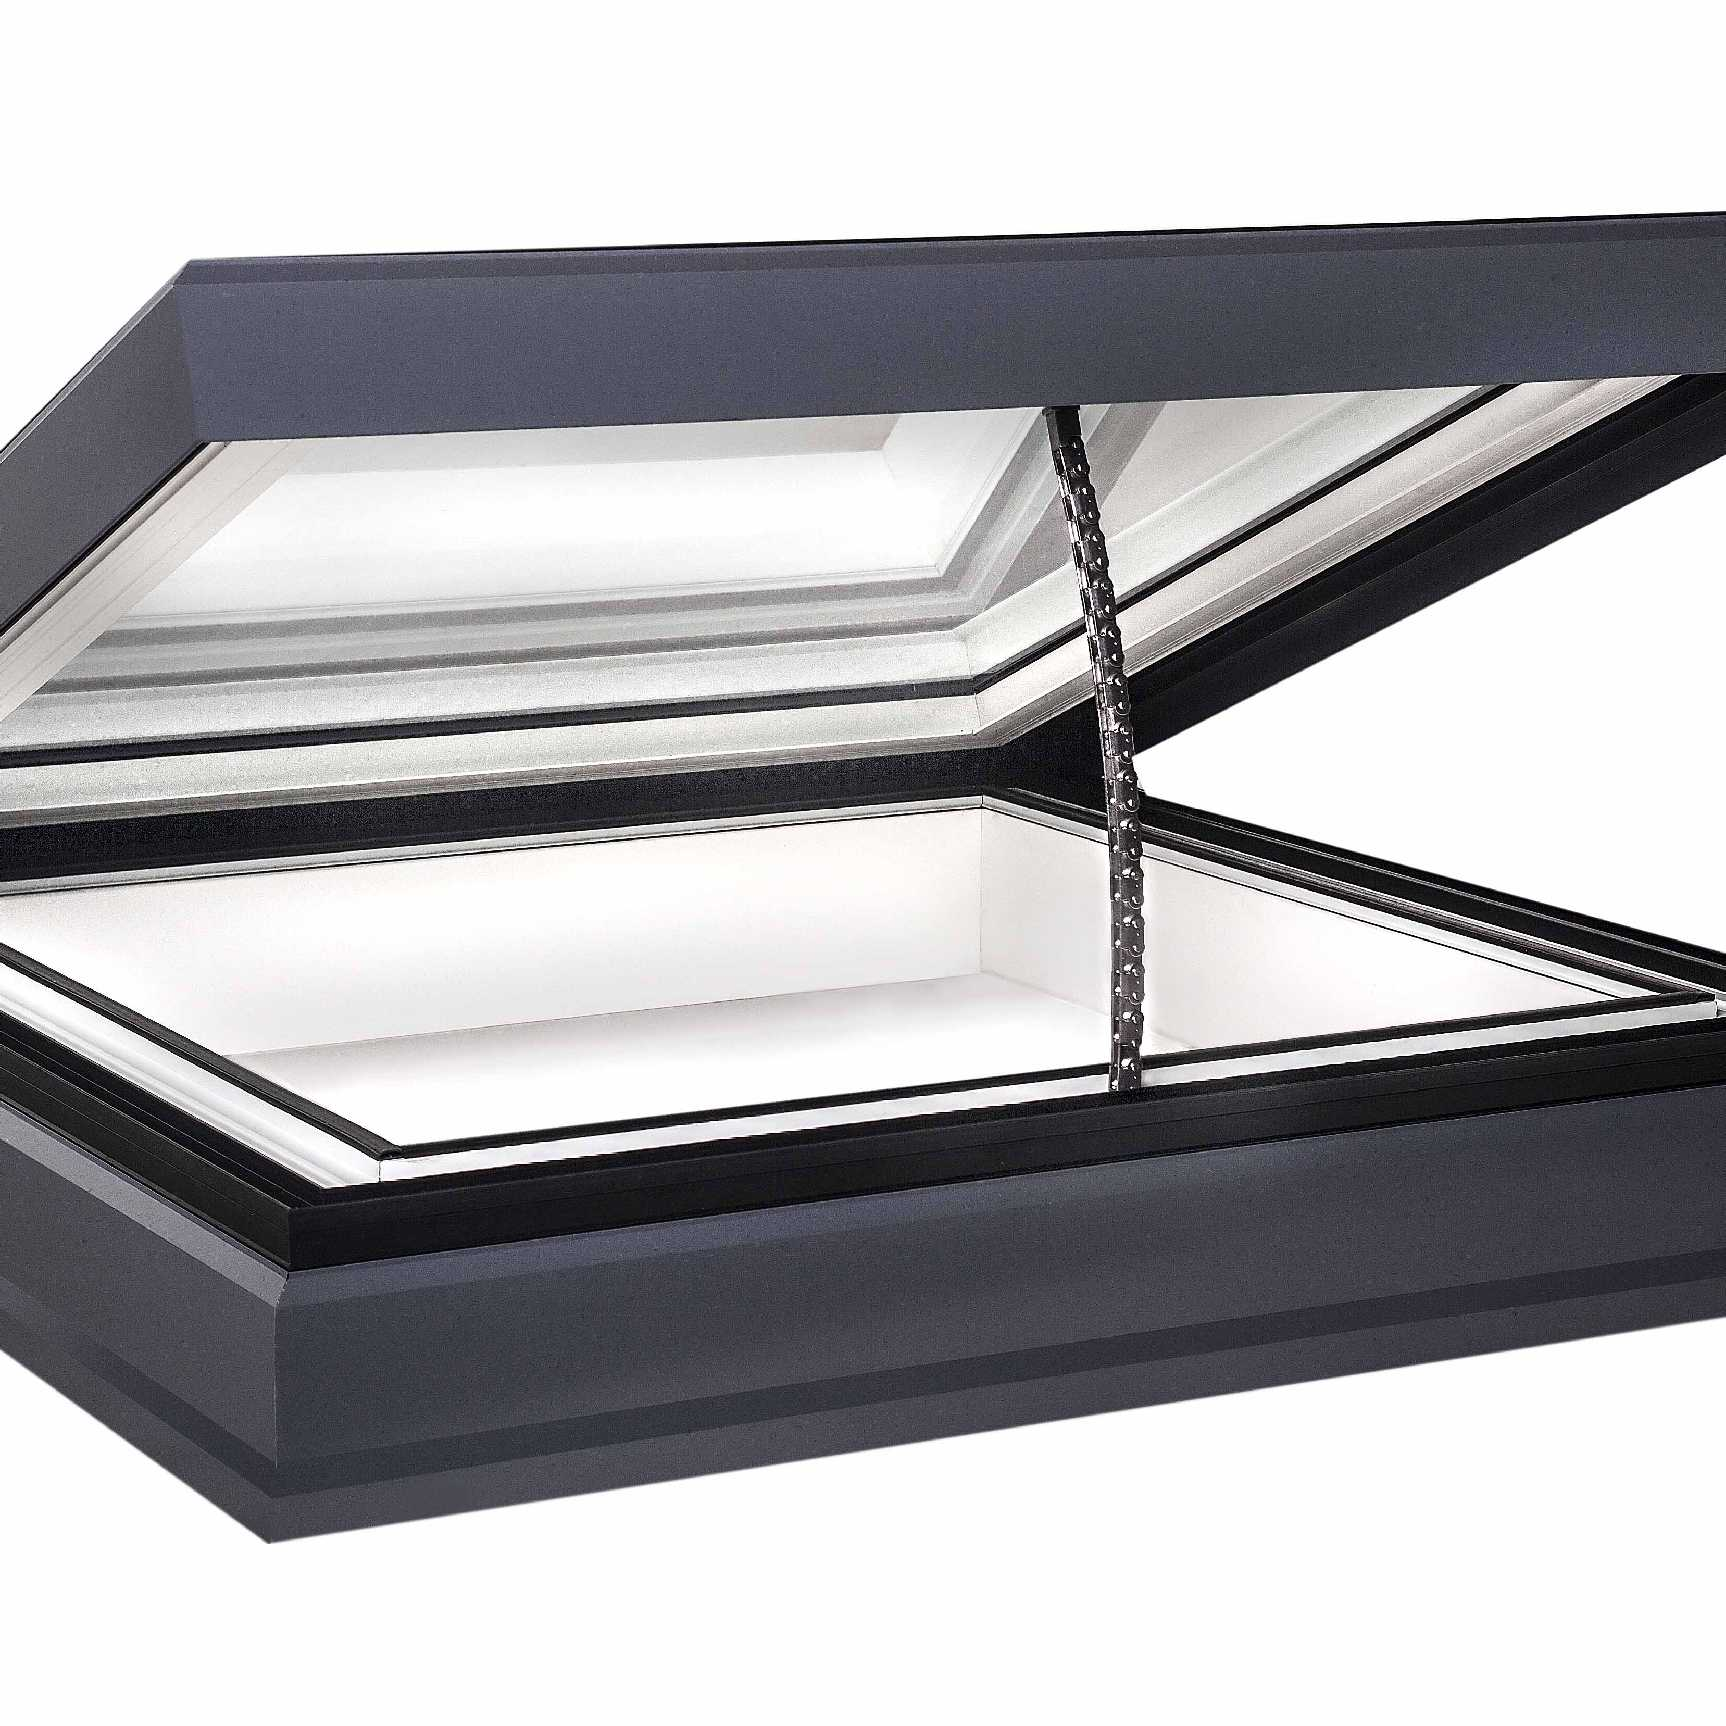 Affordable EcoGard Flat Roof light, Double Glazed, Electric Opening, 1,000mm x 1,500mm